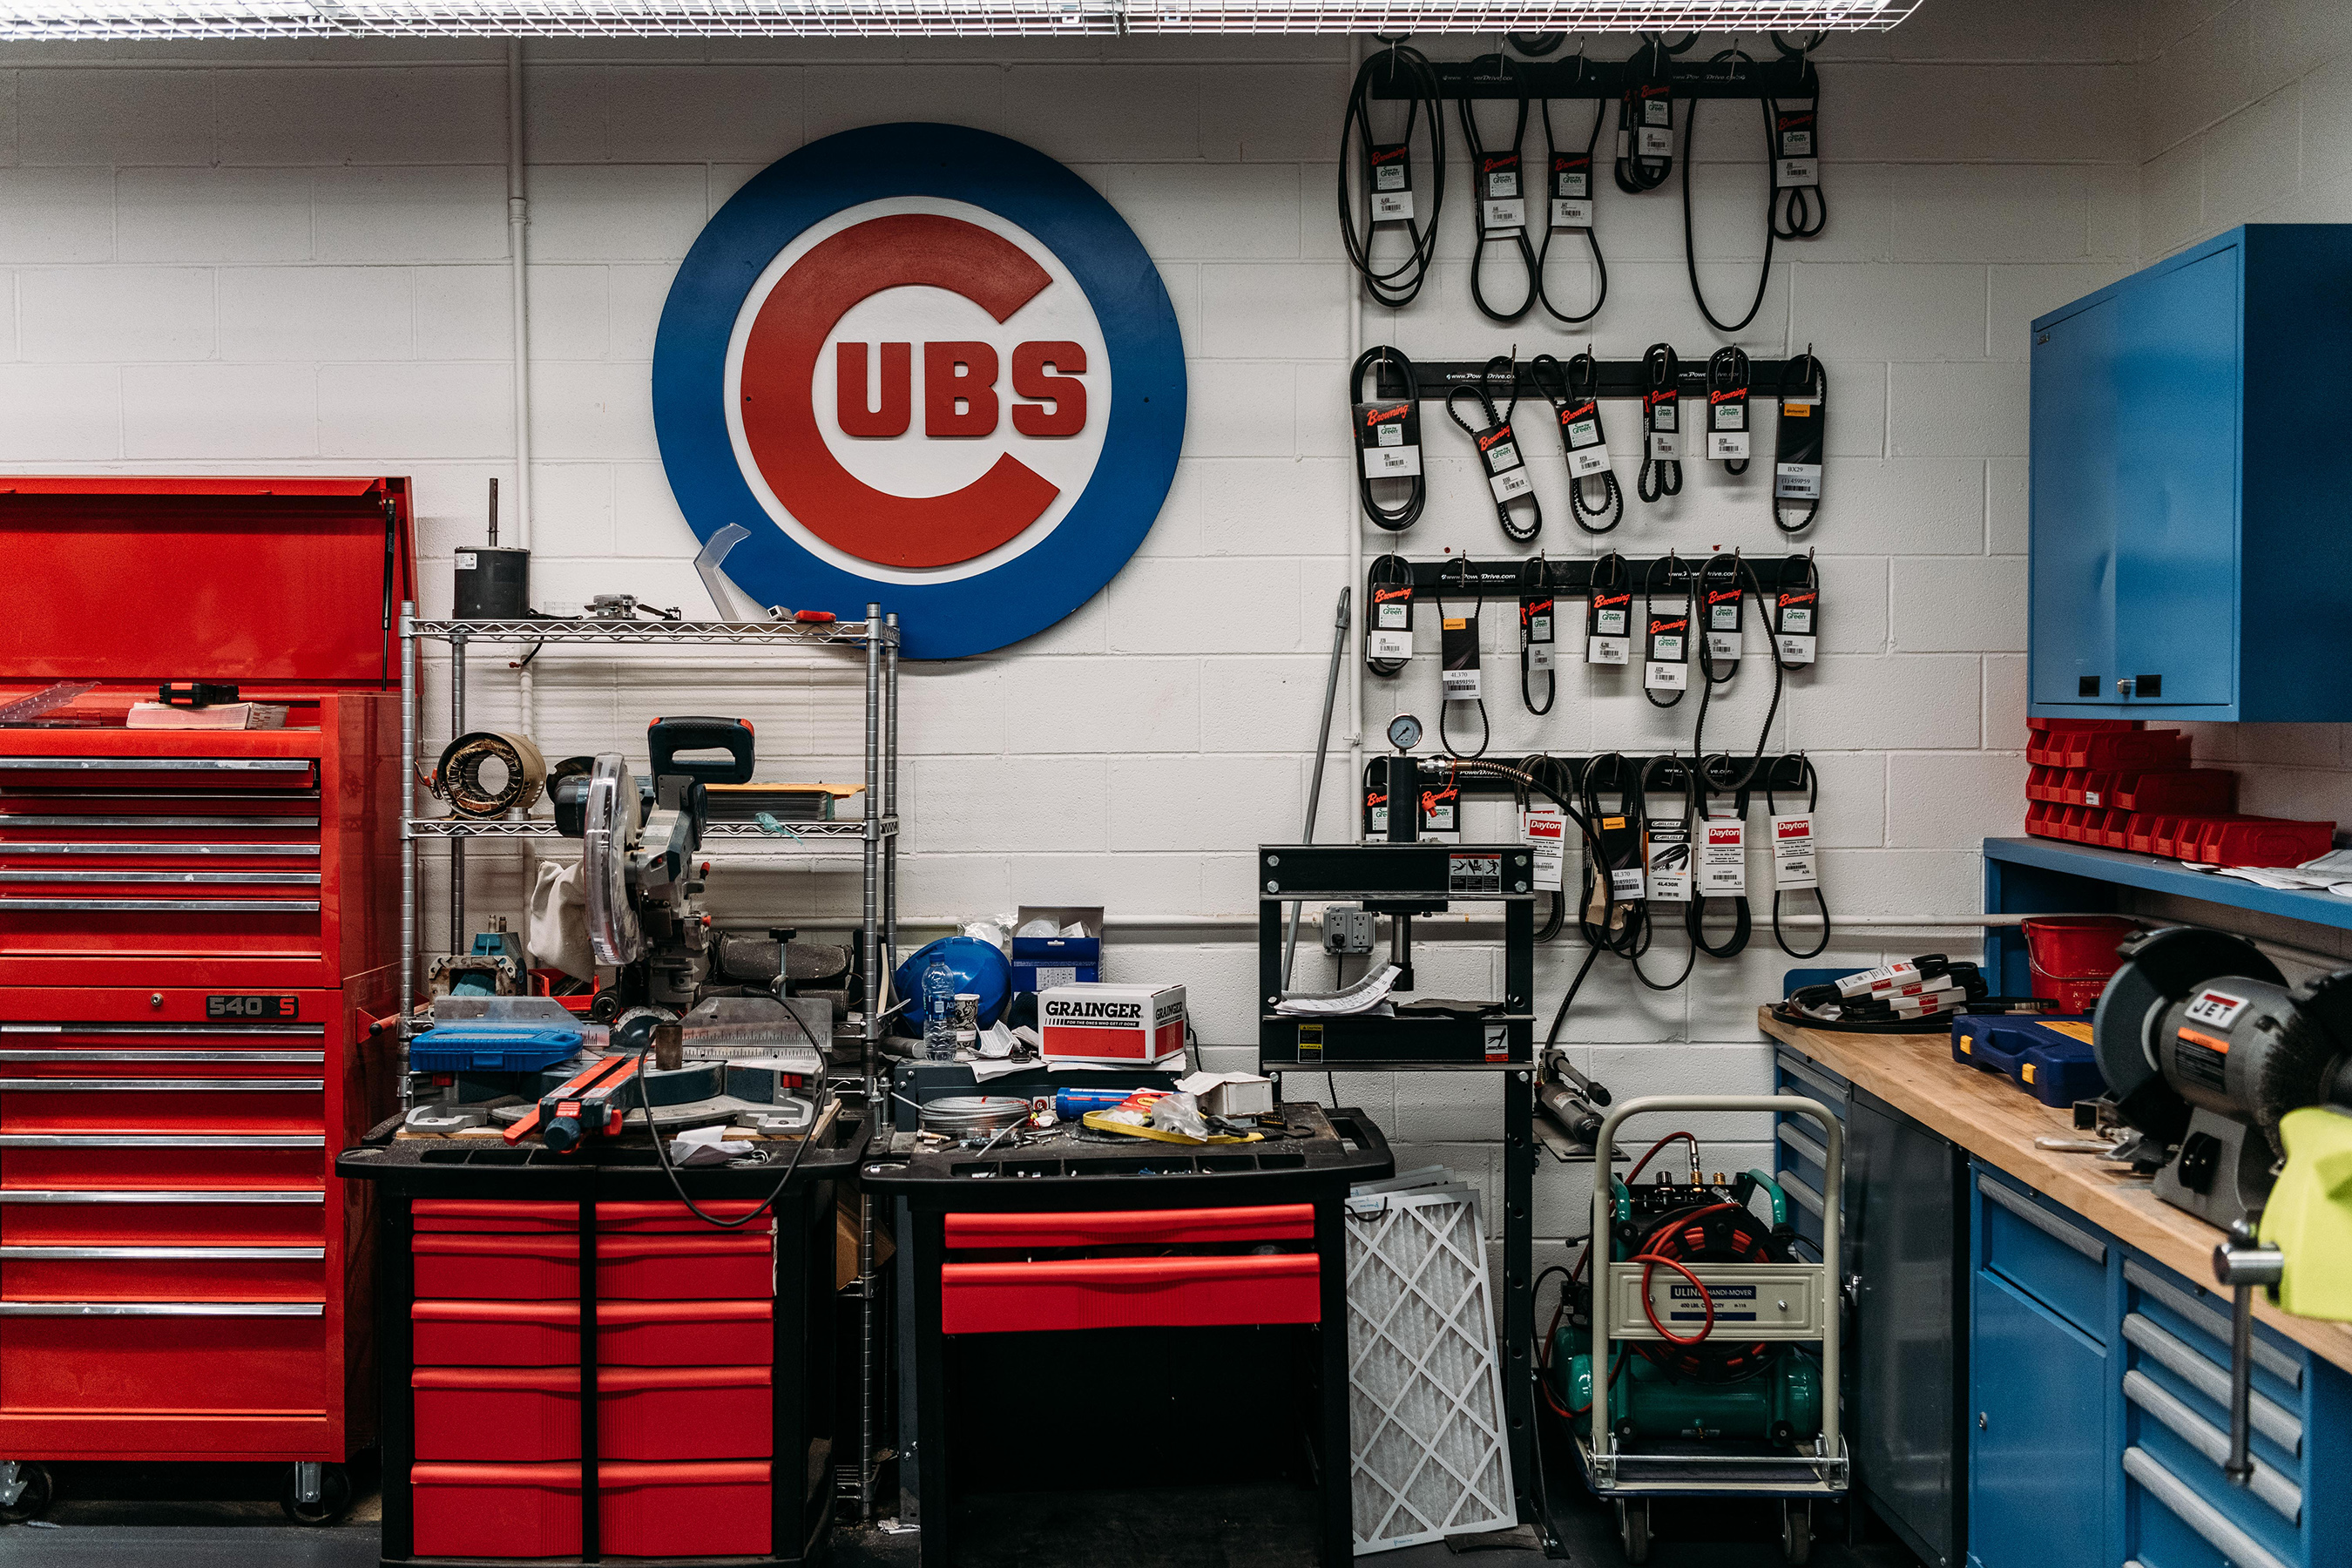 Grainger is the Official MRO Distributor and Services Partner of the Cubs and Wrigley Field